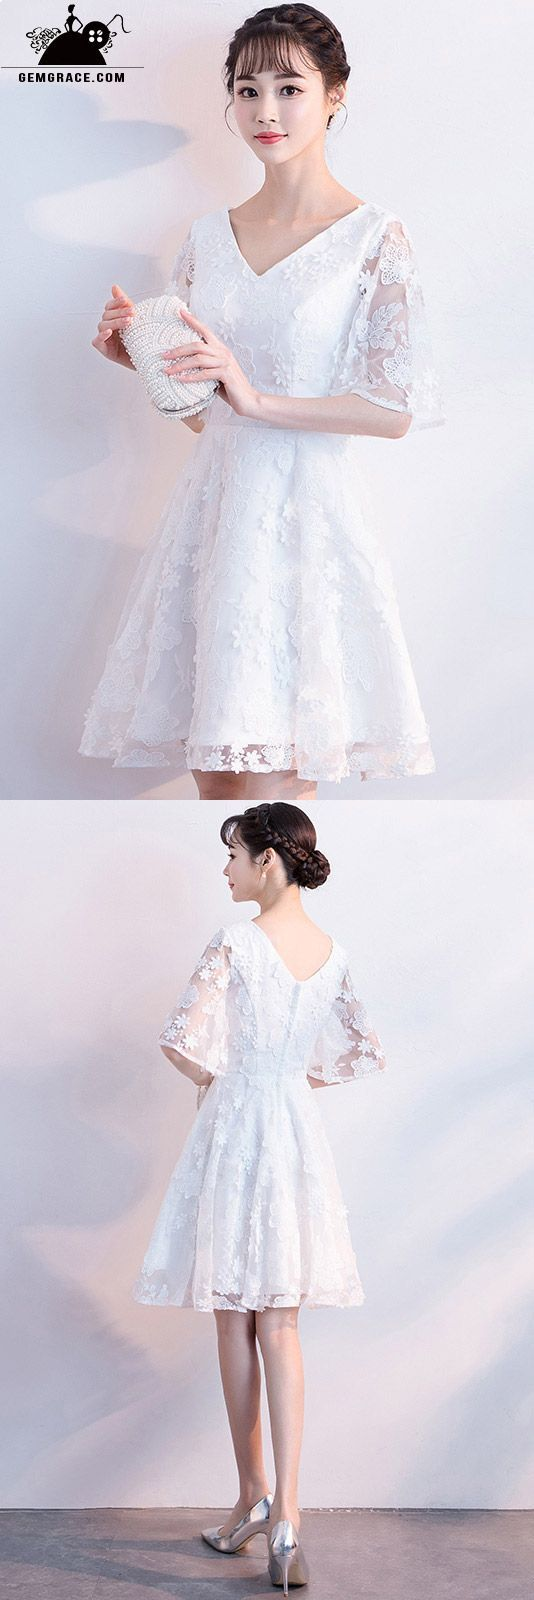 Modest vneck lace short wedding dress with illusion sleeves